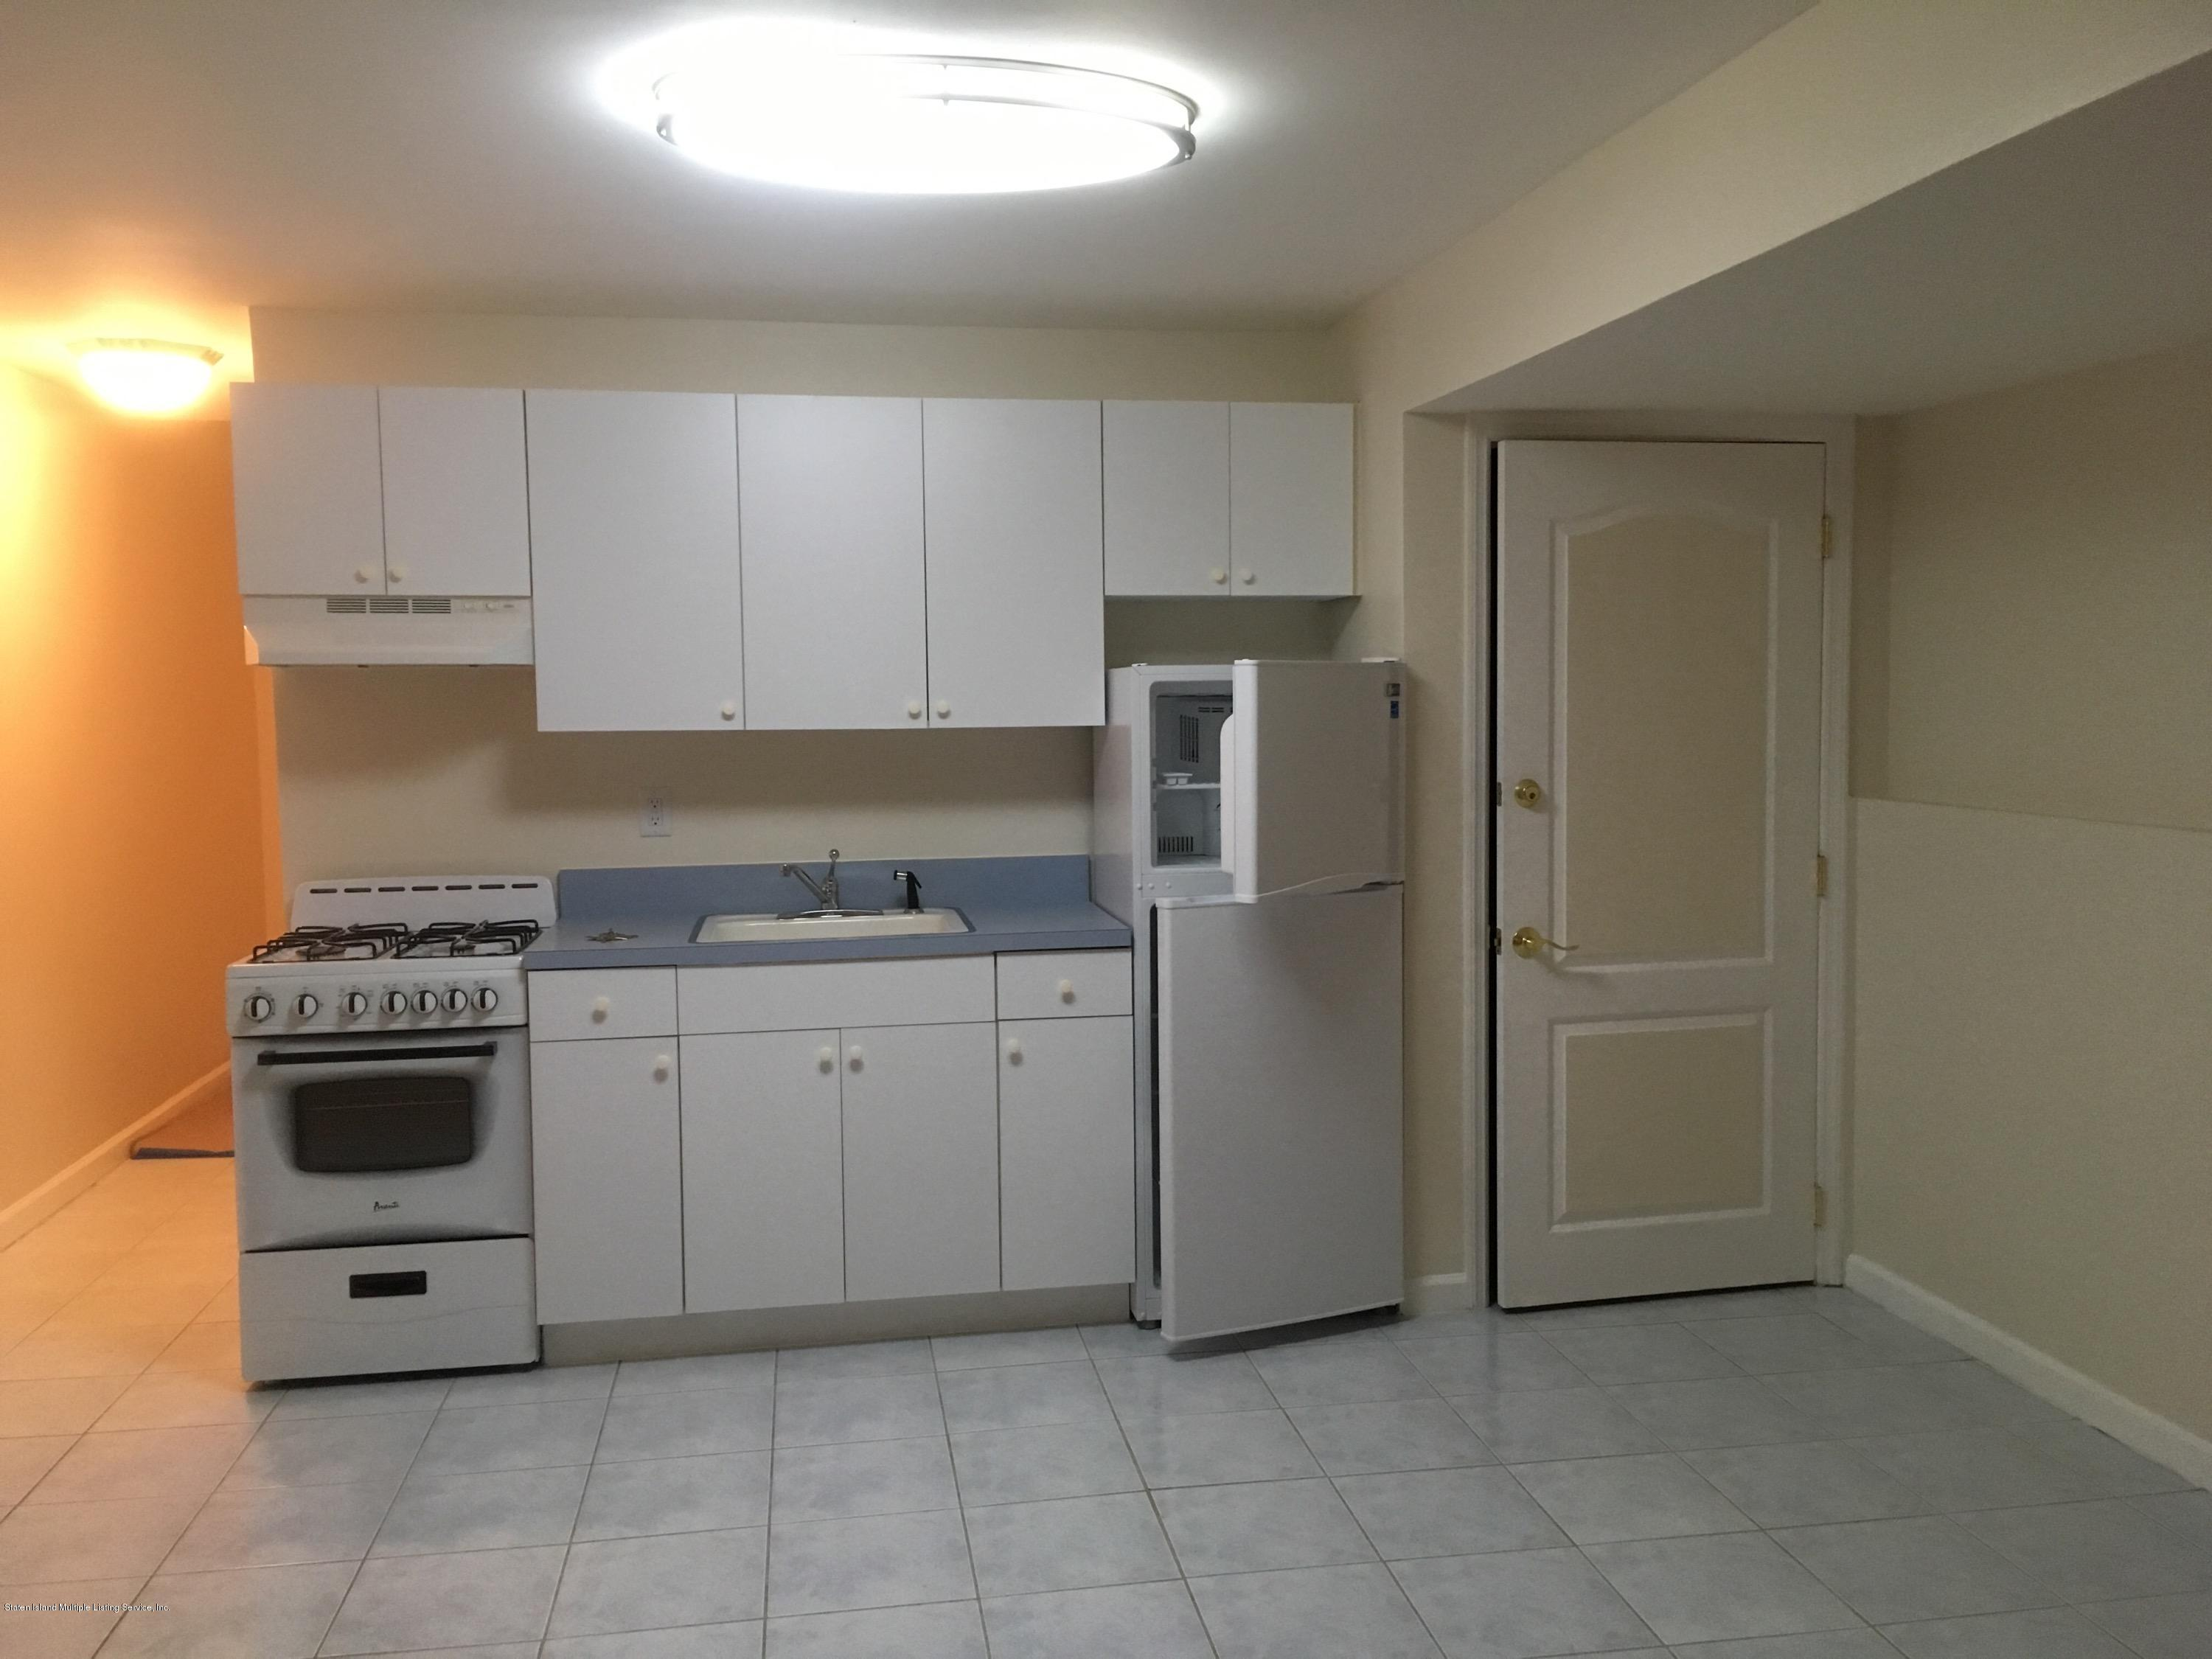 Two Family - Attached 25 Arden Avenue  Staten Island, NY 10312, MLS-1136986-16